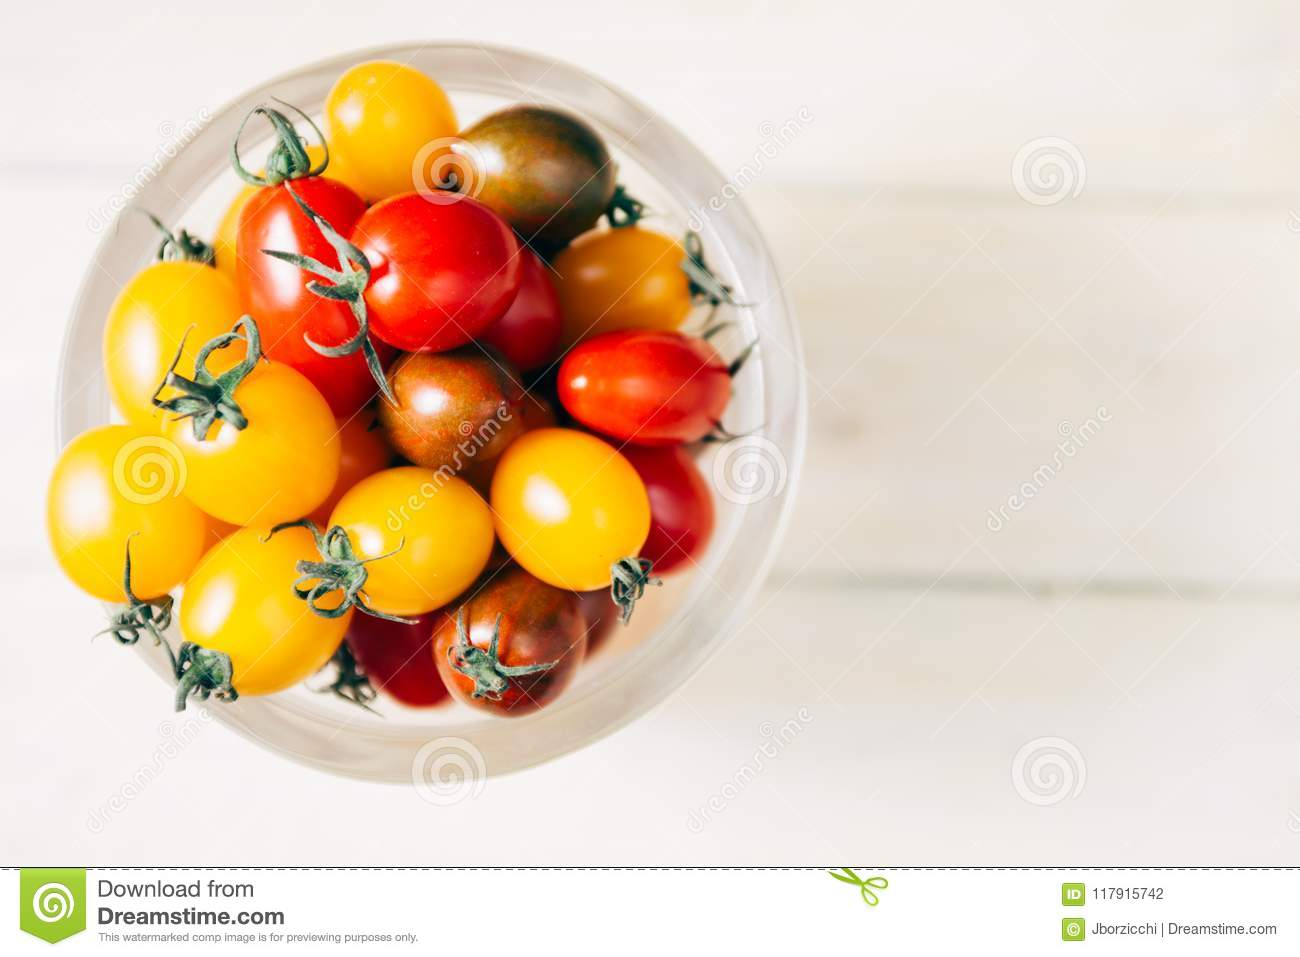 Why are the tomatoes inside white Why do tomatoes have white flesh